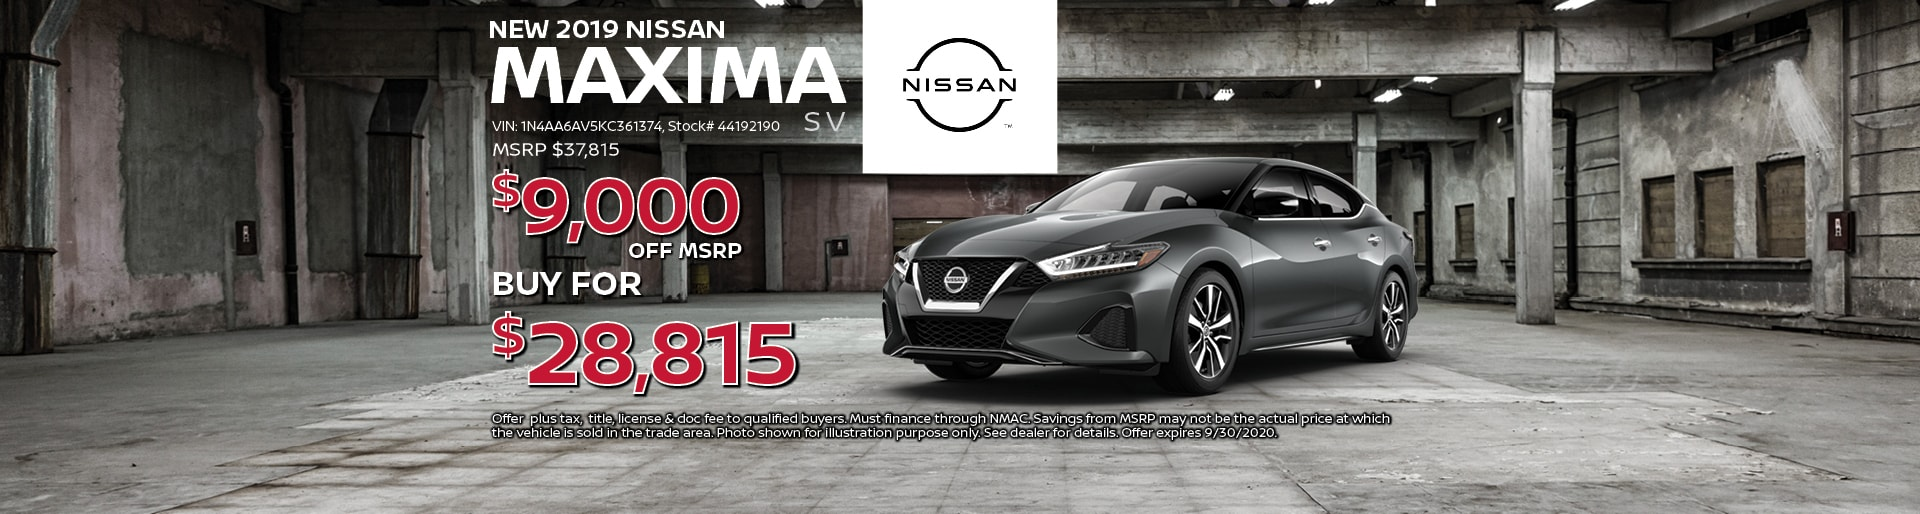 2019 Nissan Maxima SV Special Offer| Lancaster, OH